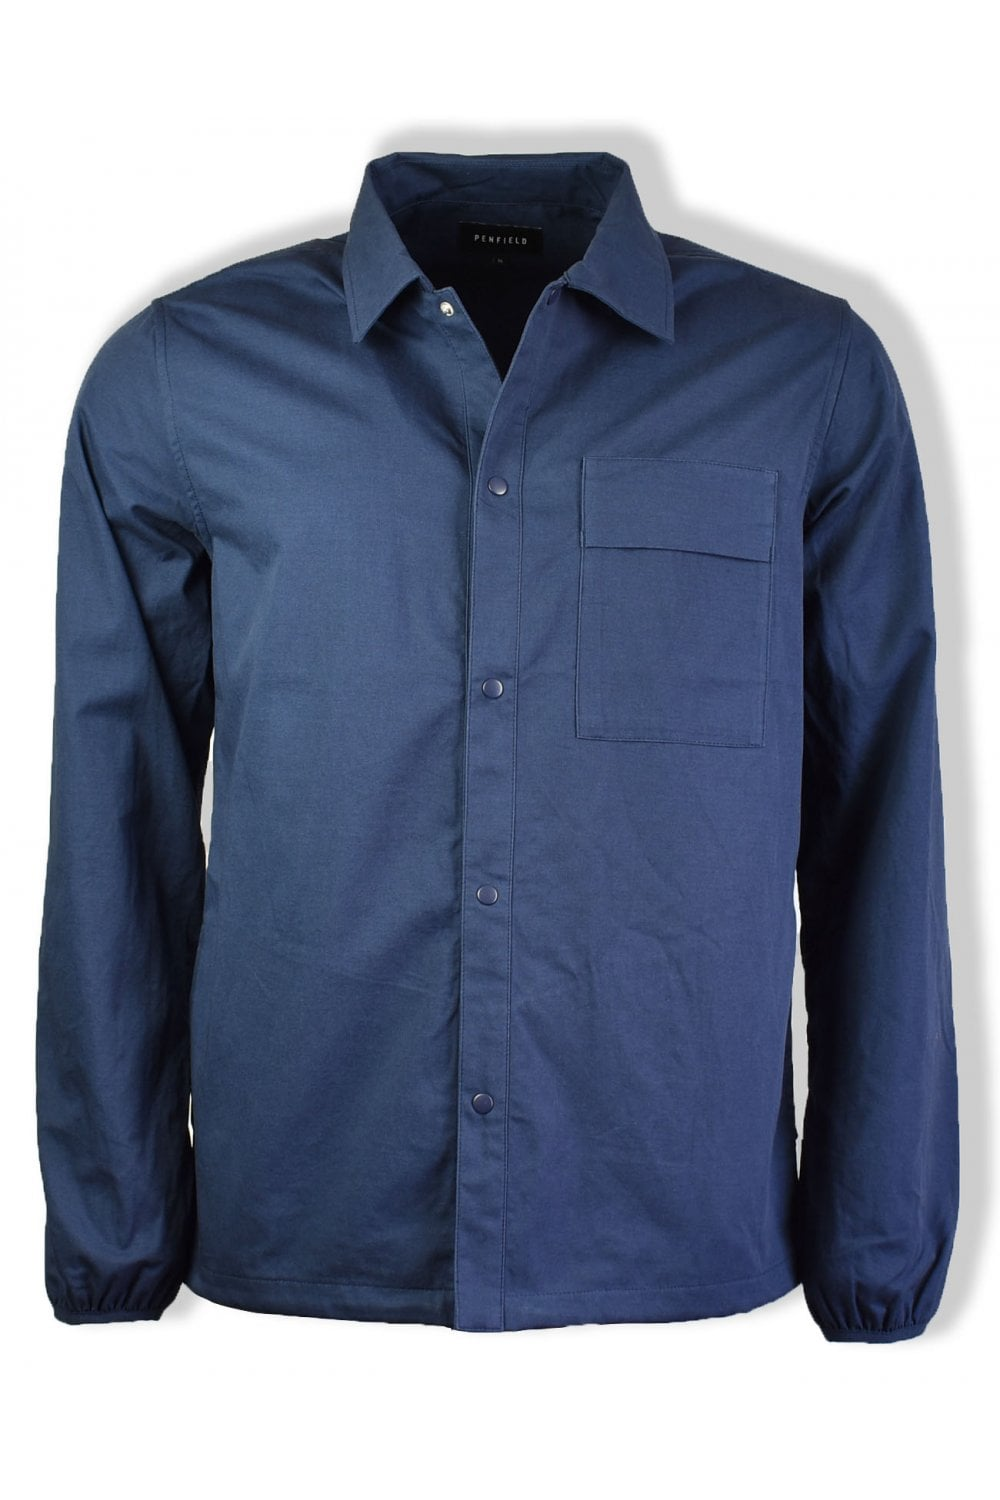 Penfield Blackstone Overshirt Peacoat